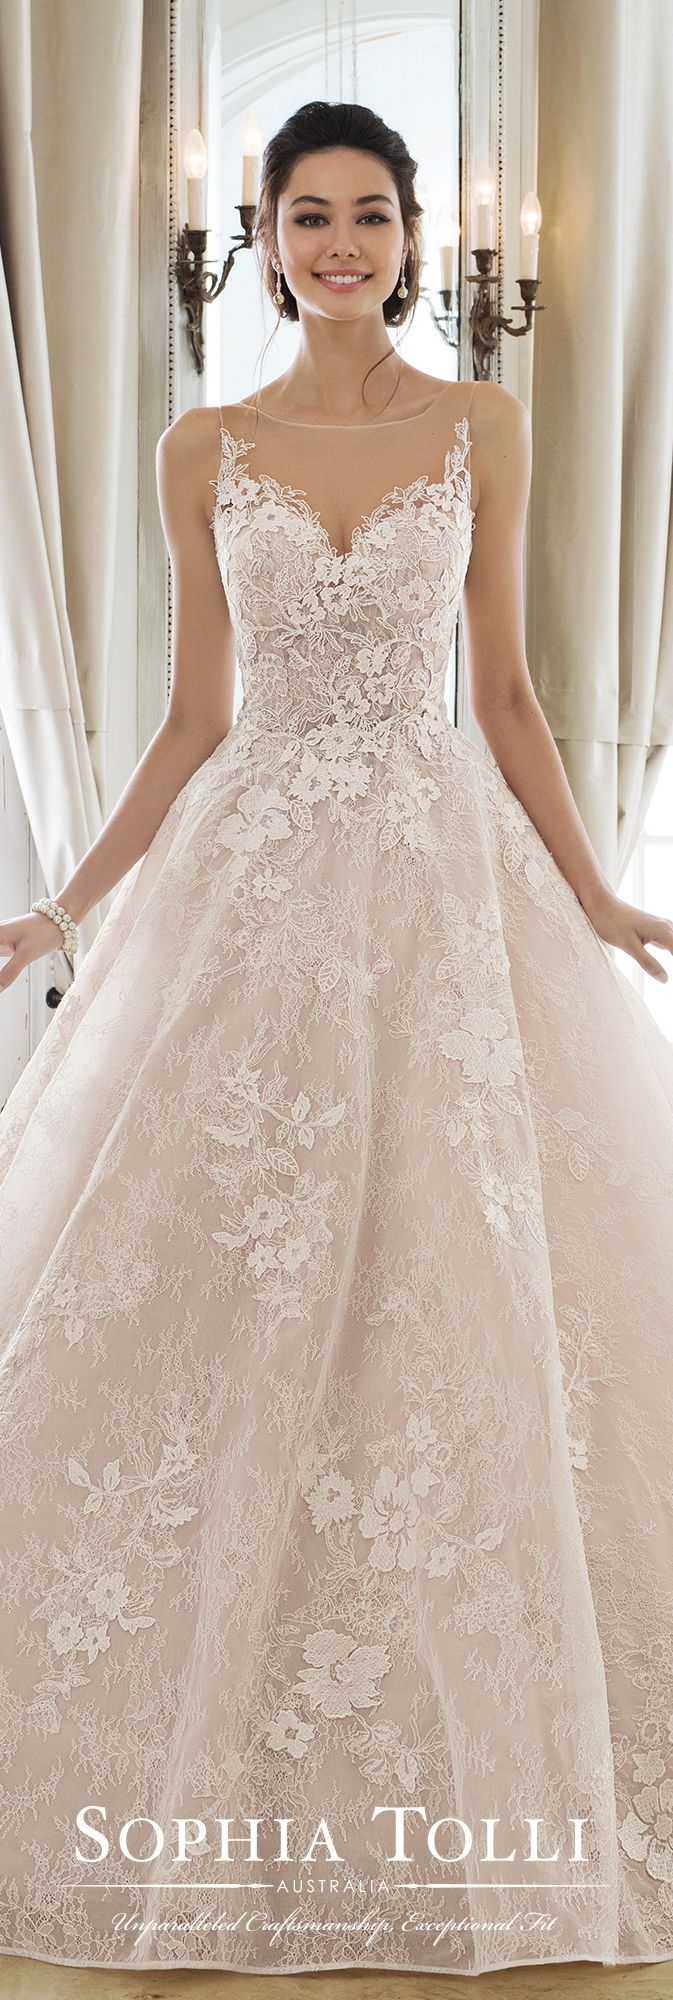 Organza Lace Sweetheart Ballgown Marriage ceremony Gown – Y11897 Aphrodite